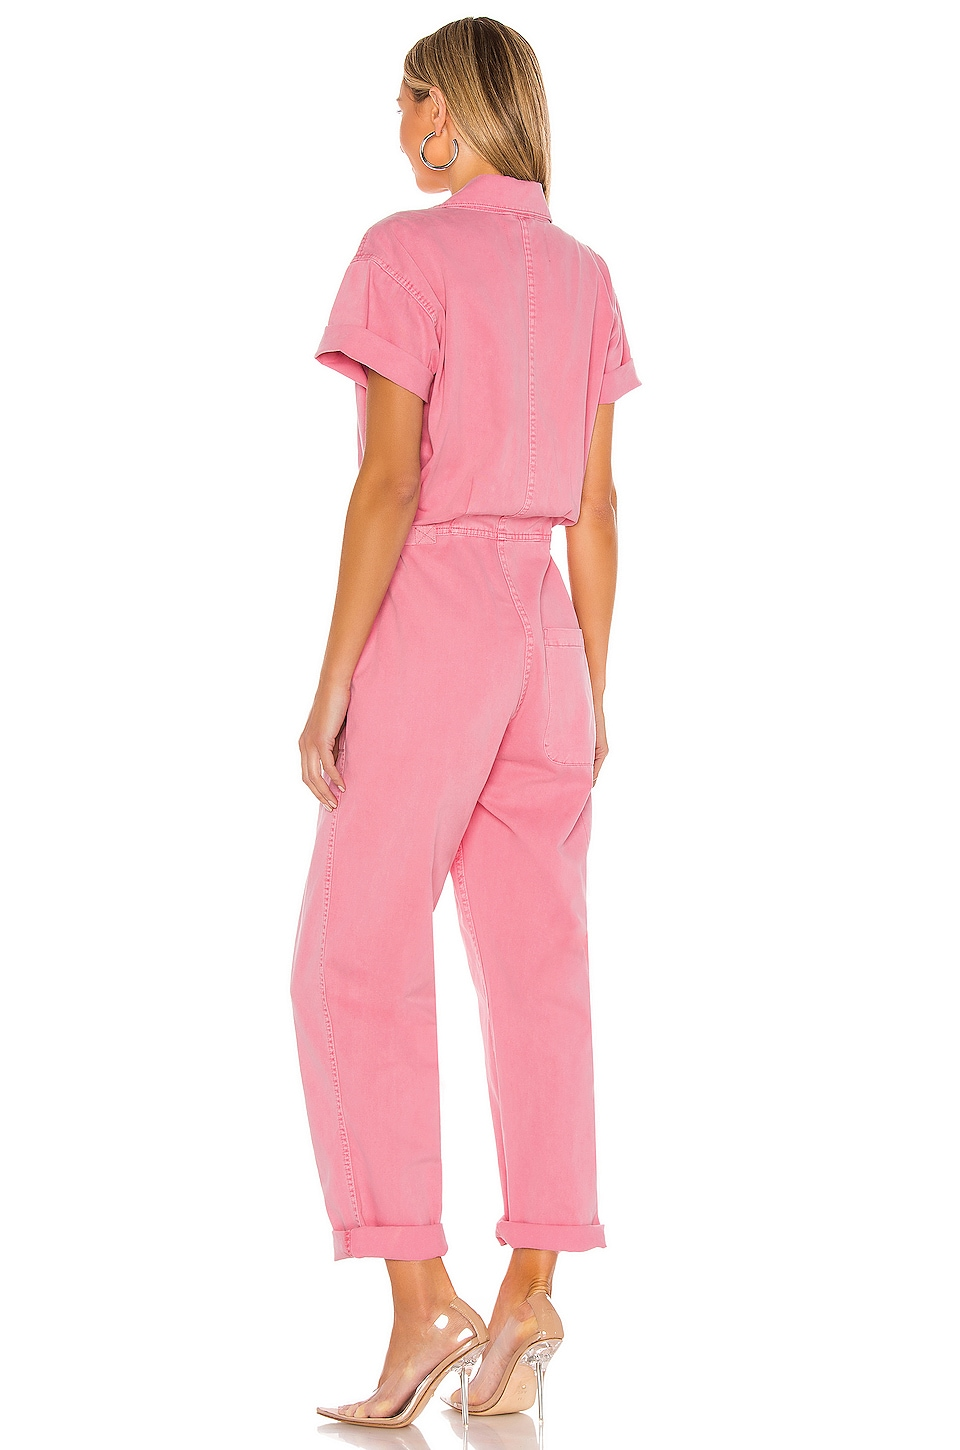 Grover Jumpsuit, view 3, click to view large image.